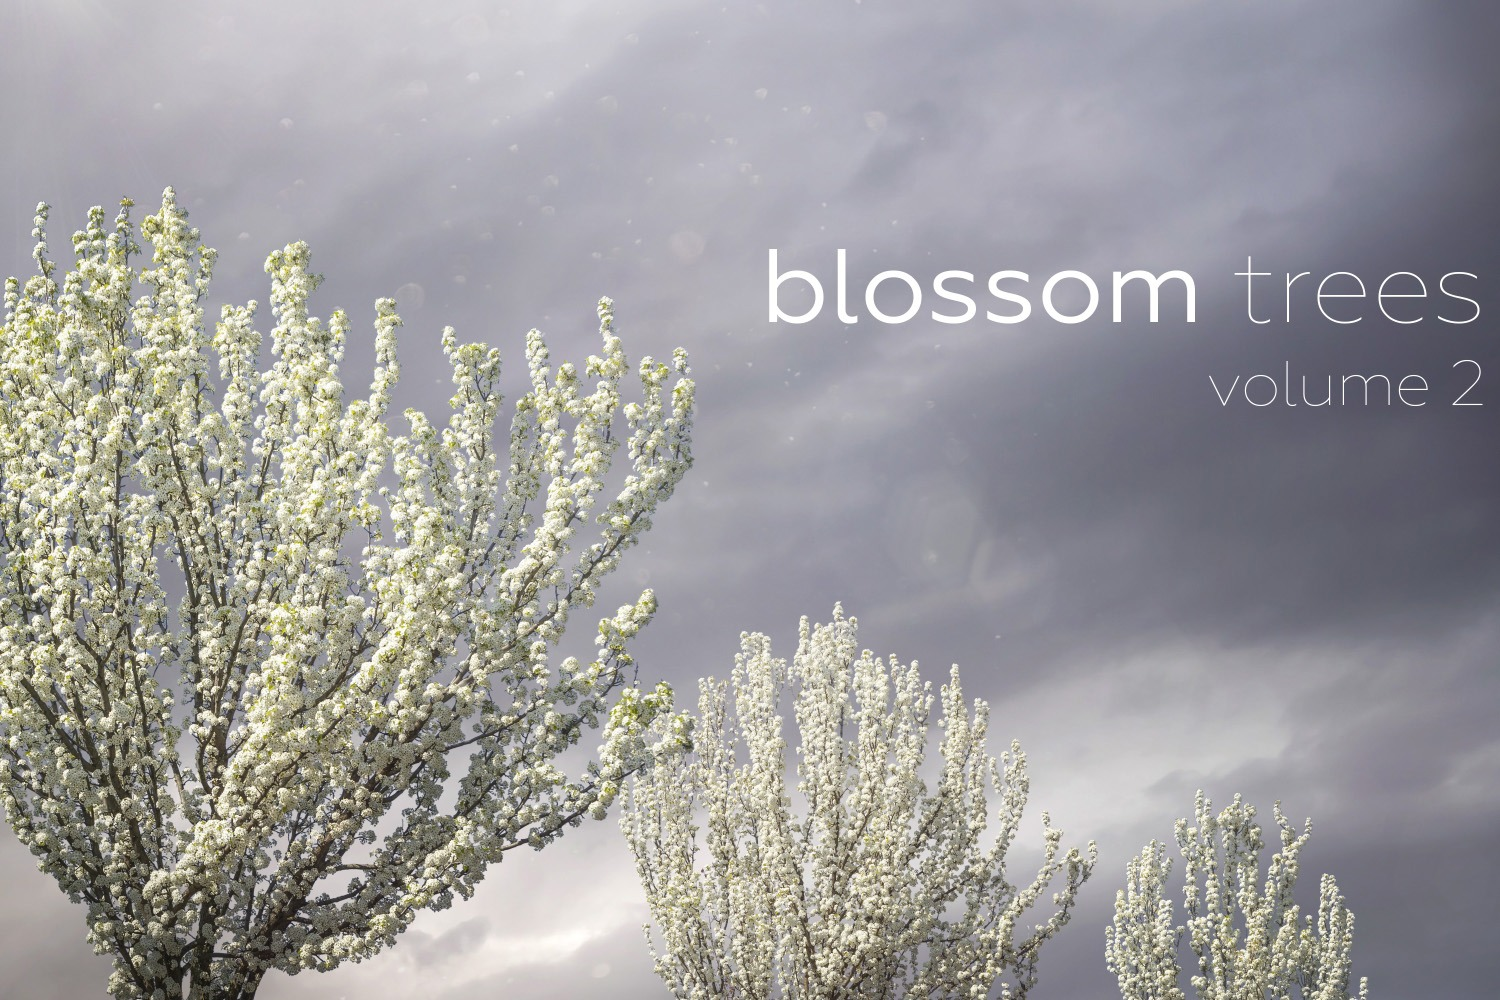 BLOSSOM TREES Volume 2